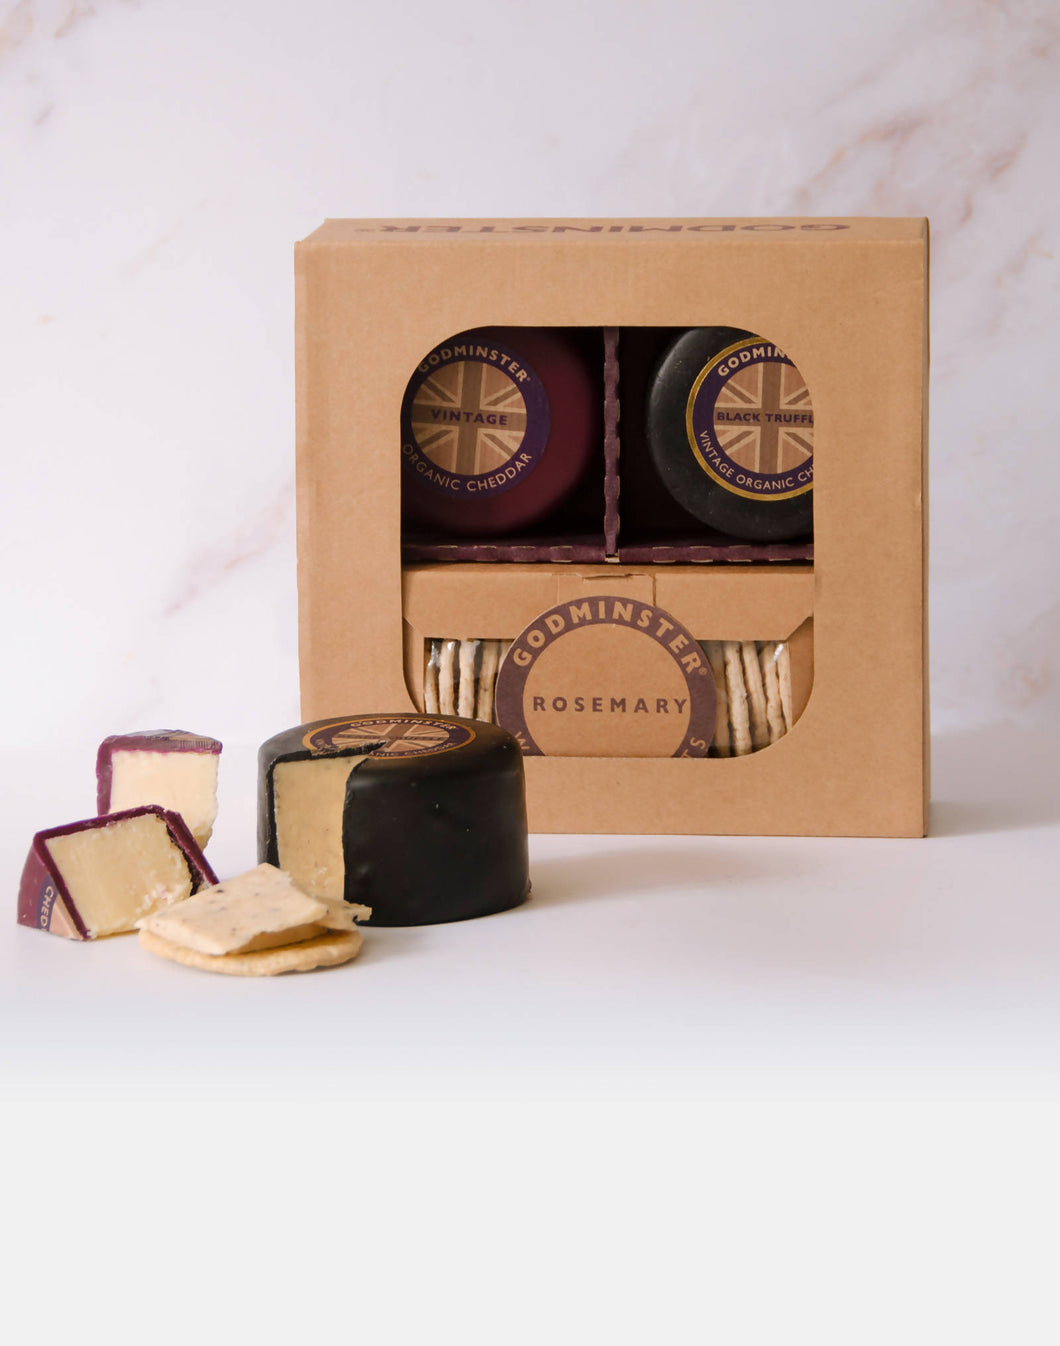 Godminster Cheddar and Black Truffle Signature Selection Gift Set